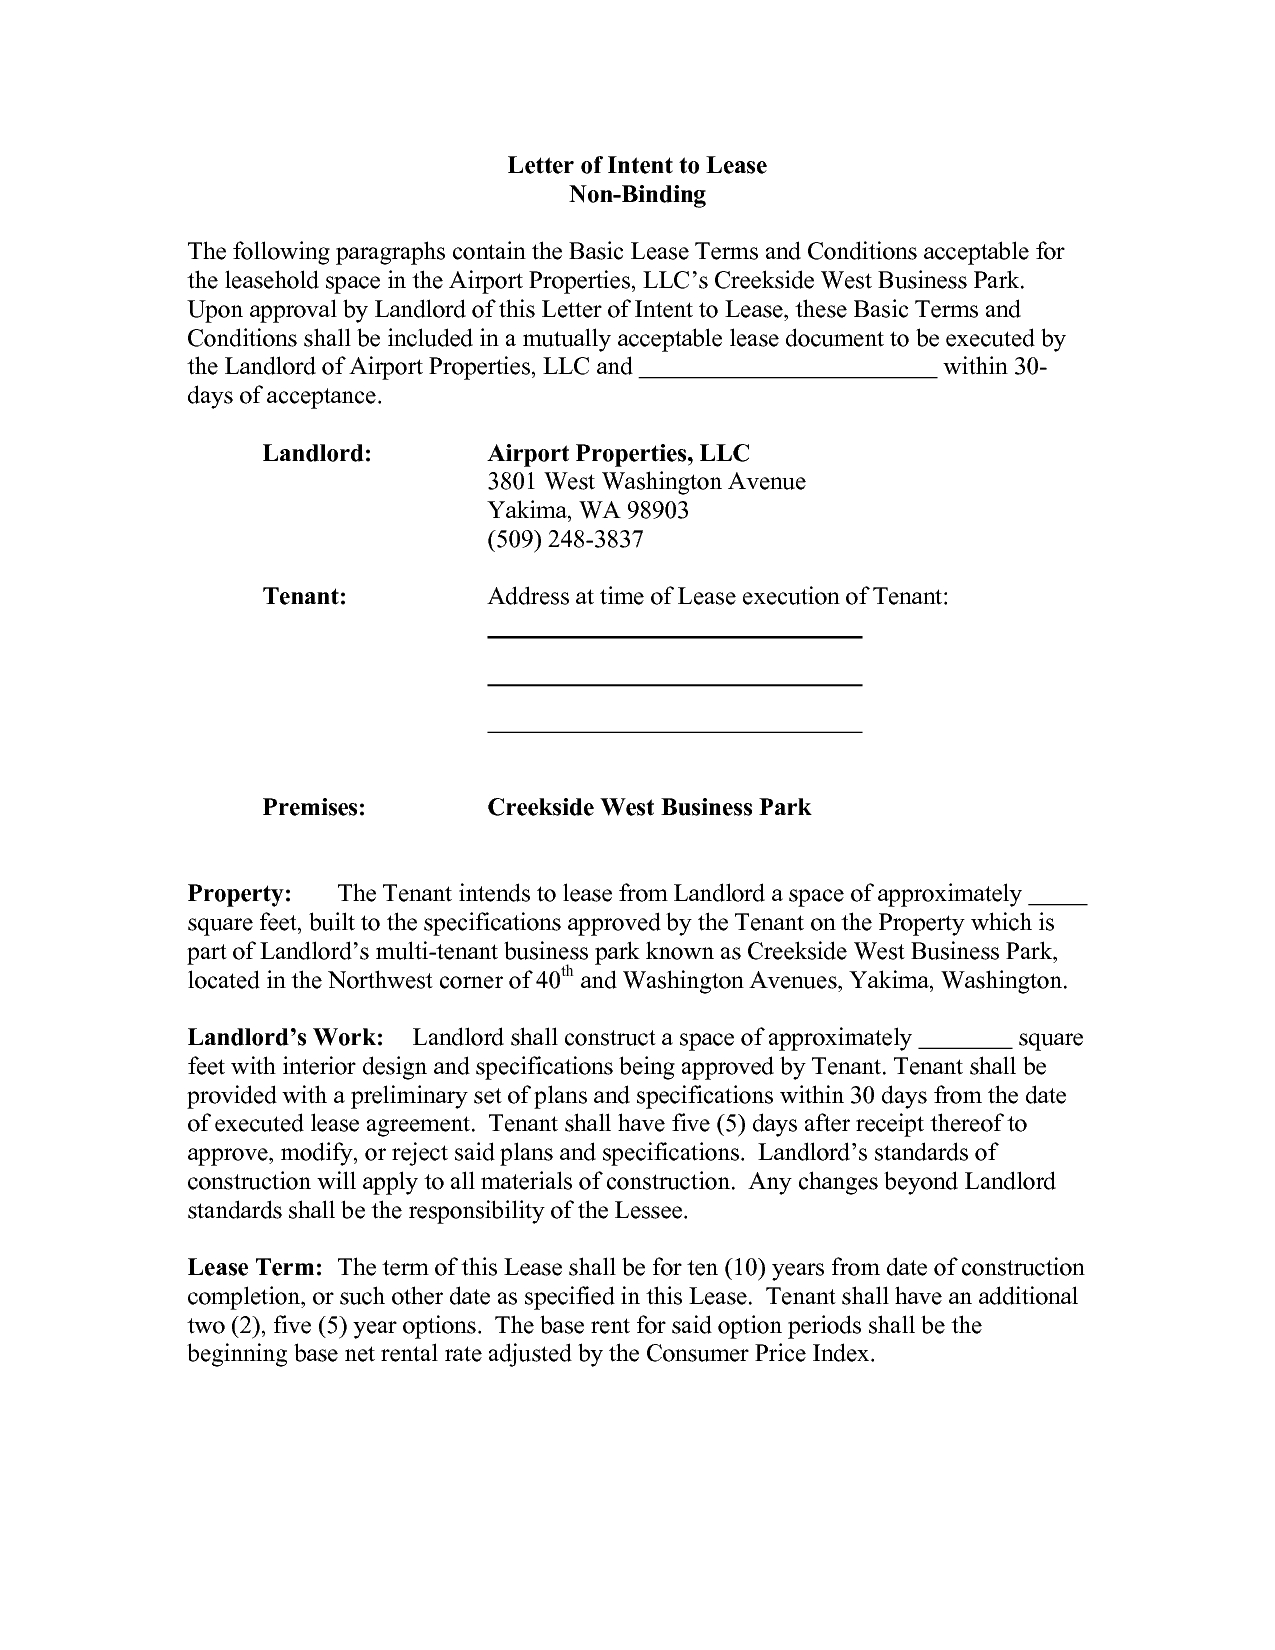 Commercial Real Estate Lease Letter Of Intent Template - Real Estate Lease Letter Intent Sample Mercial Purchase